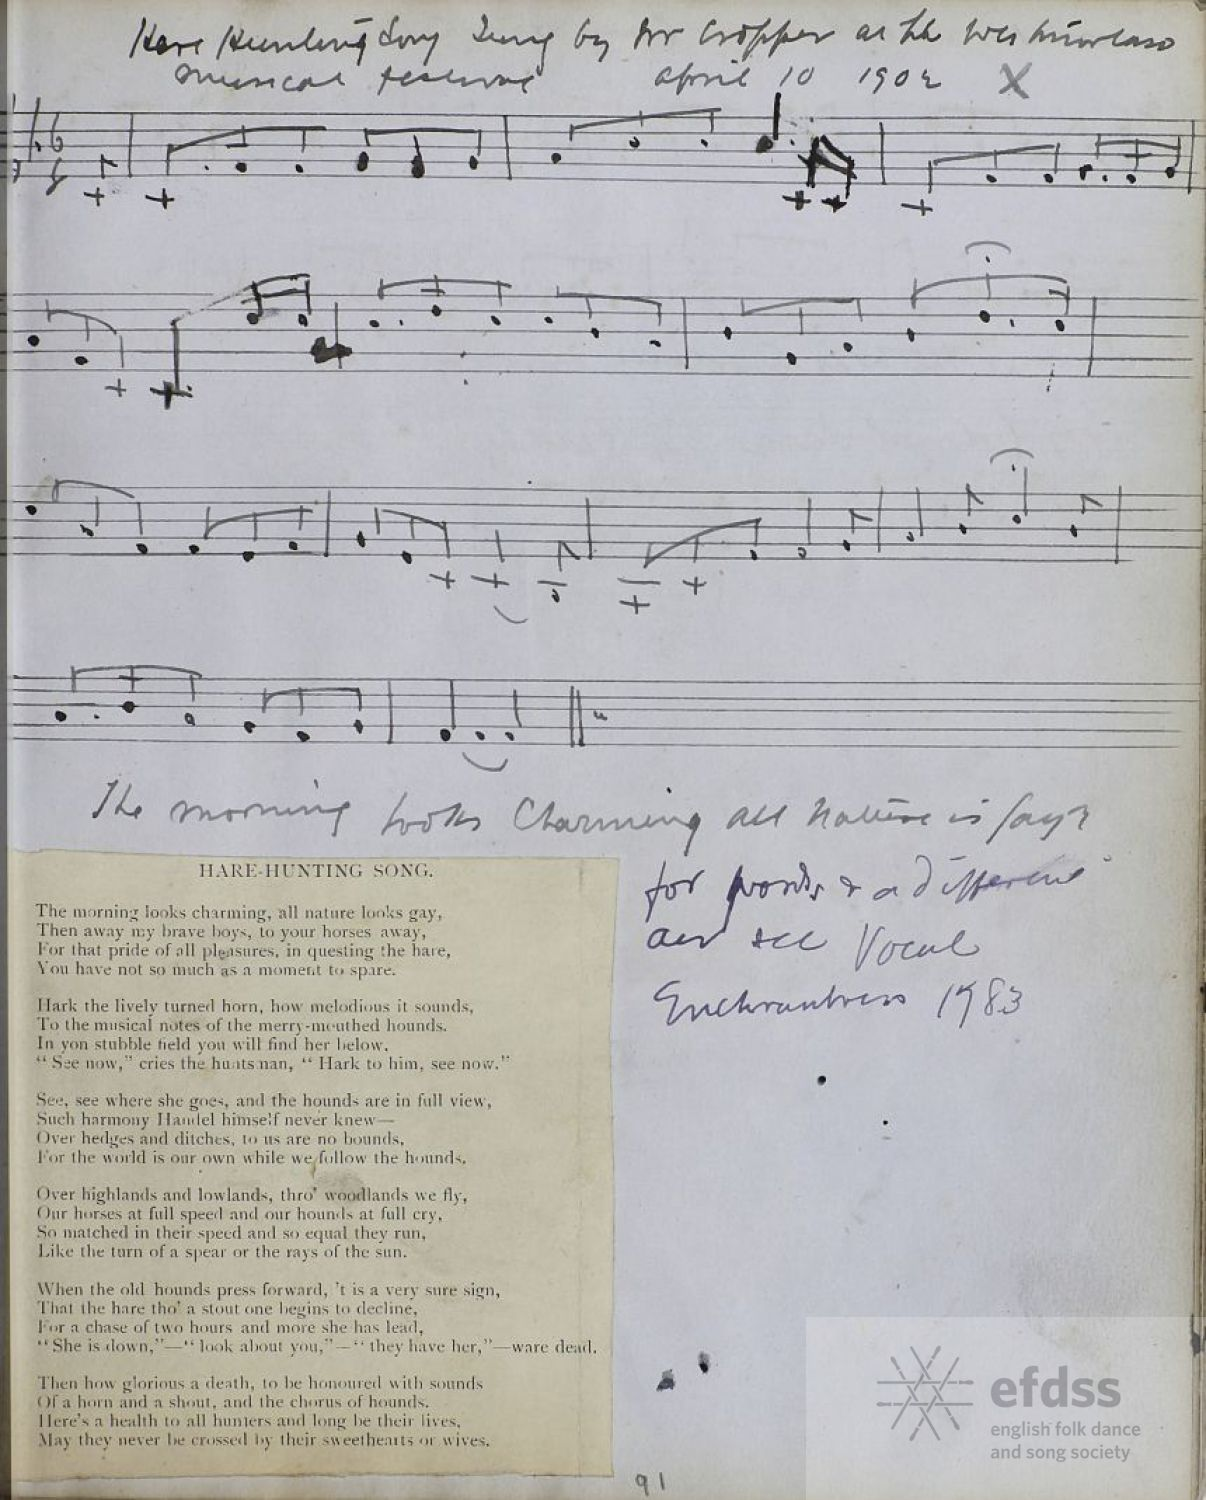 Hare Hunting Song, from the Kidson MSS, via the Full English archive.